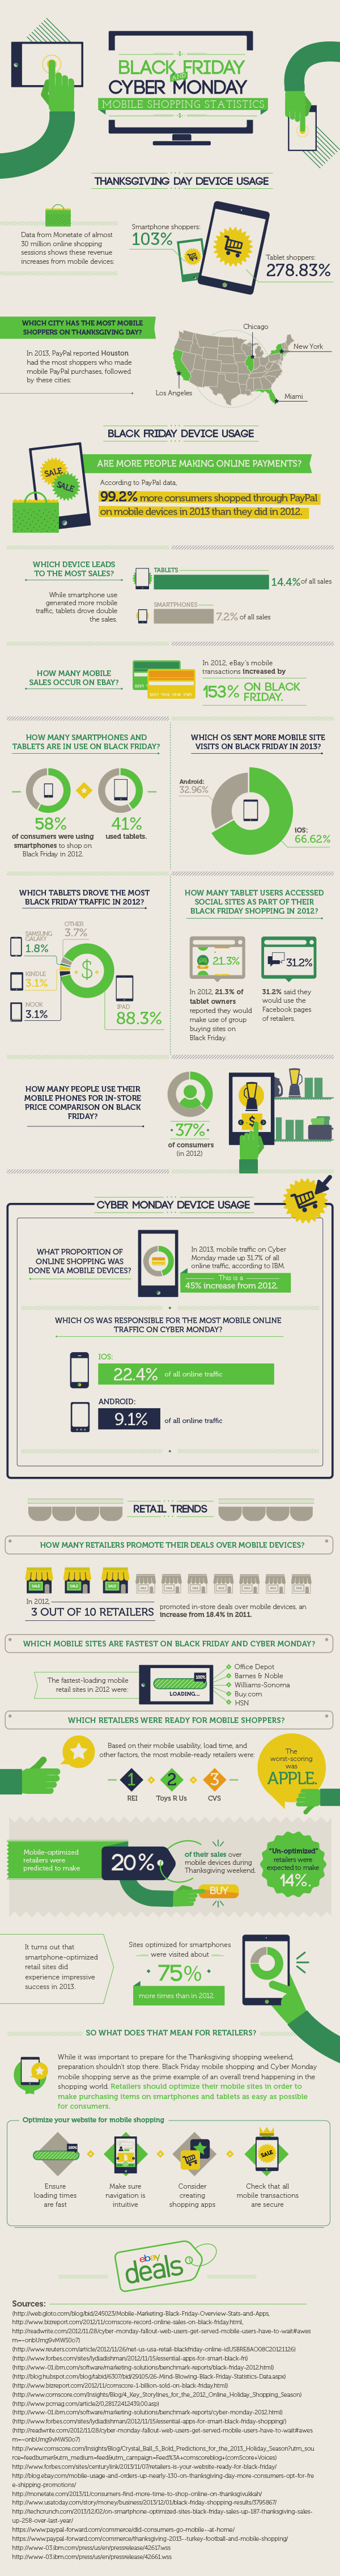 Black Friday/Cyber Monday - Mobile Shopping Stats